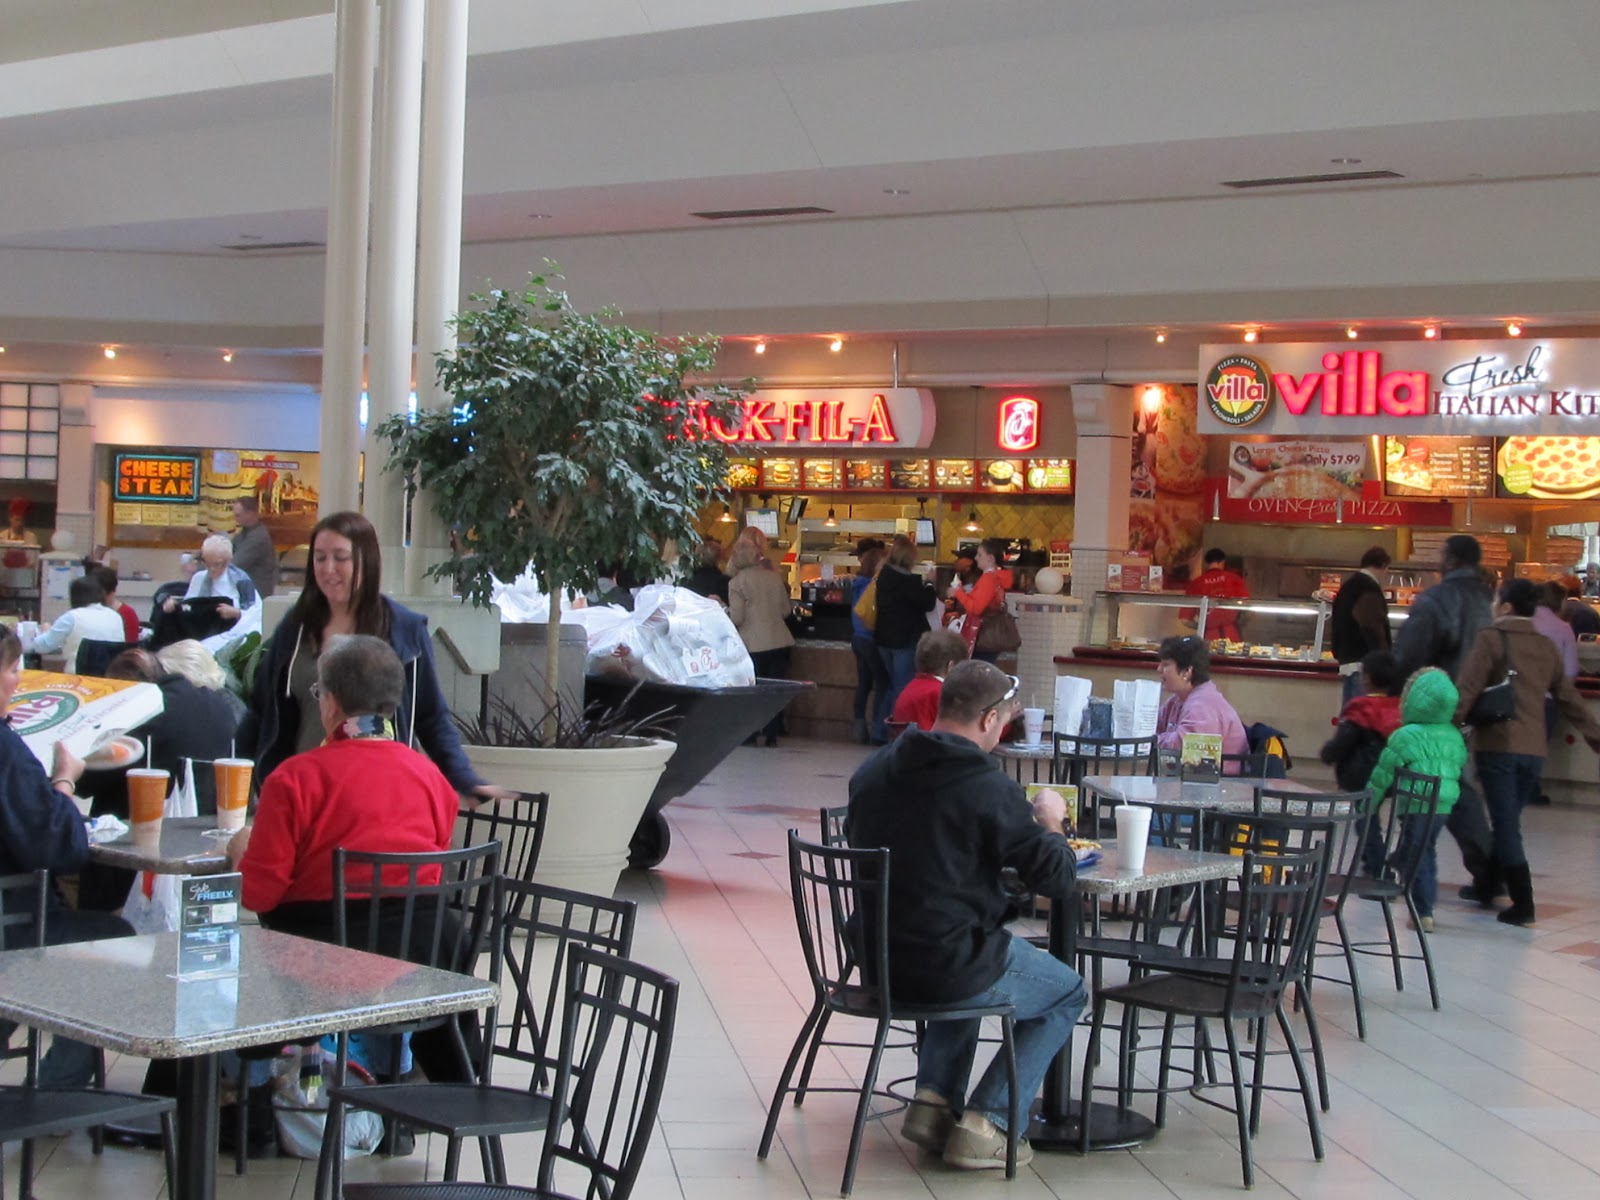 Chairs In Food Court For Kids